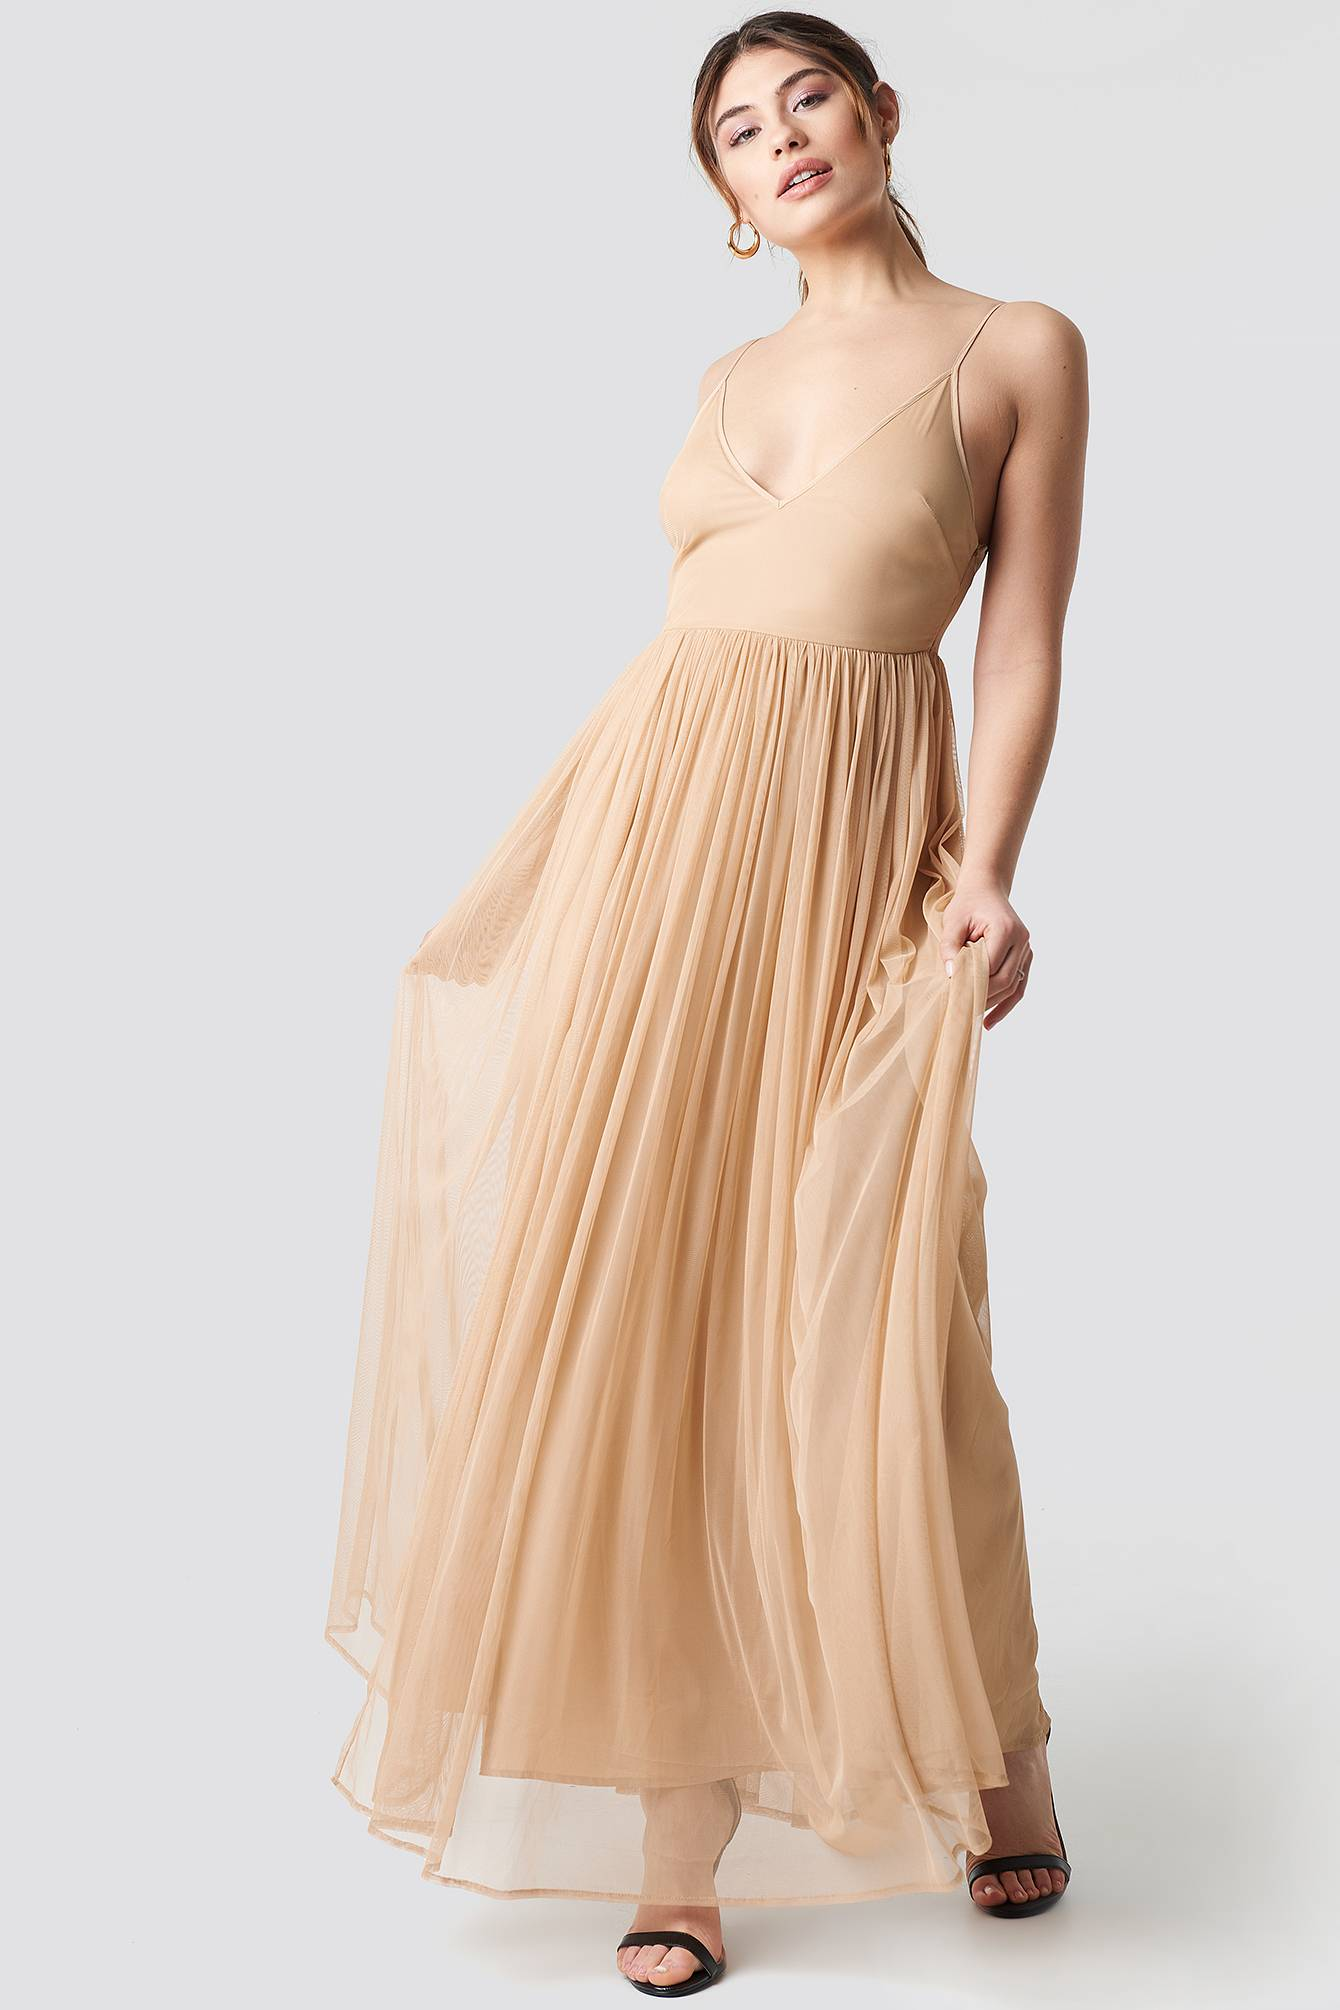 Image of Pamela x NA-KD Front Slit Flowy Dress - Nude